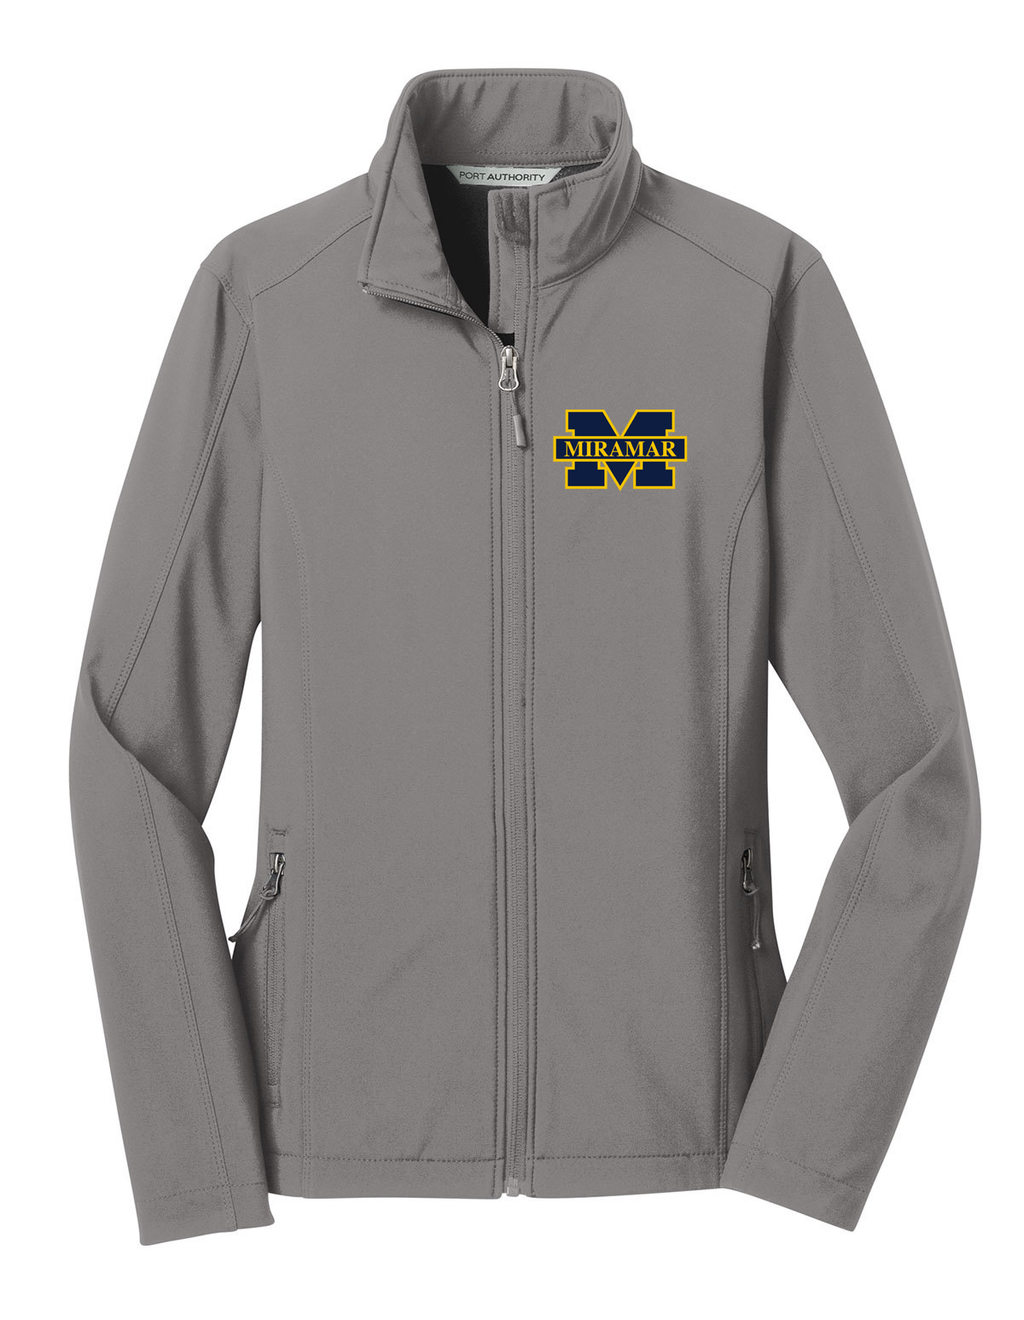 Miramar Wolverines Football Women's Soft Shell Jacket